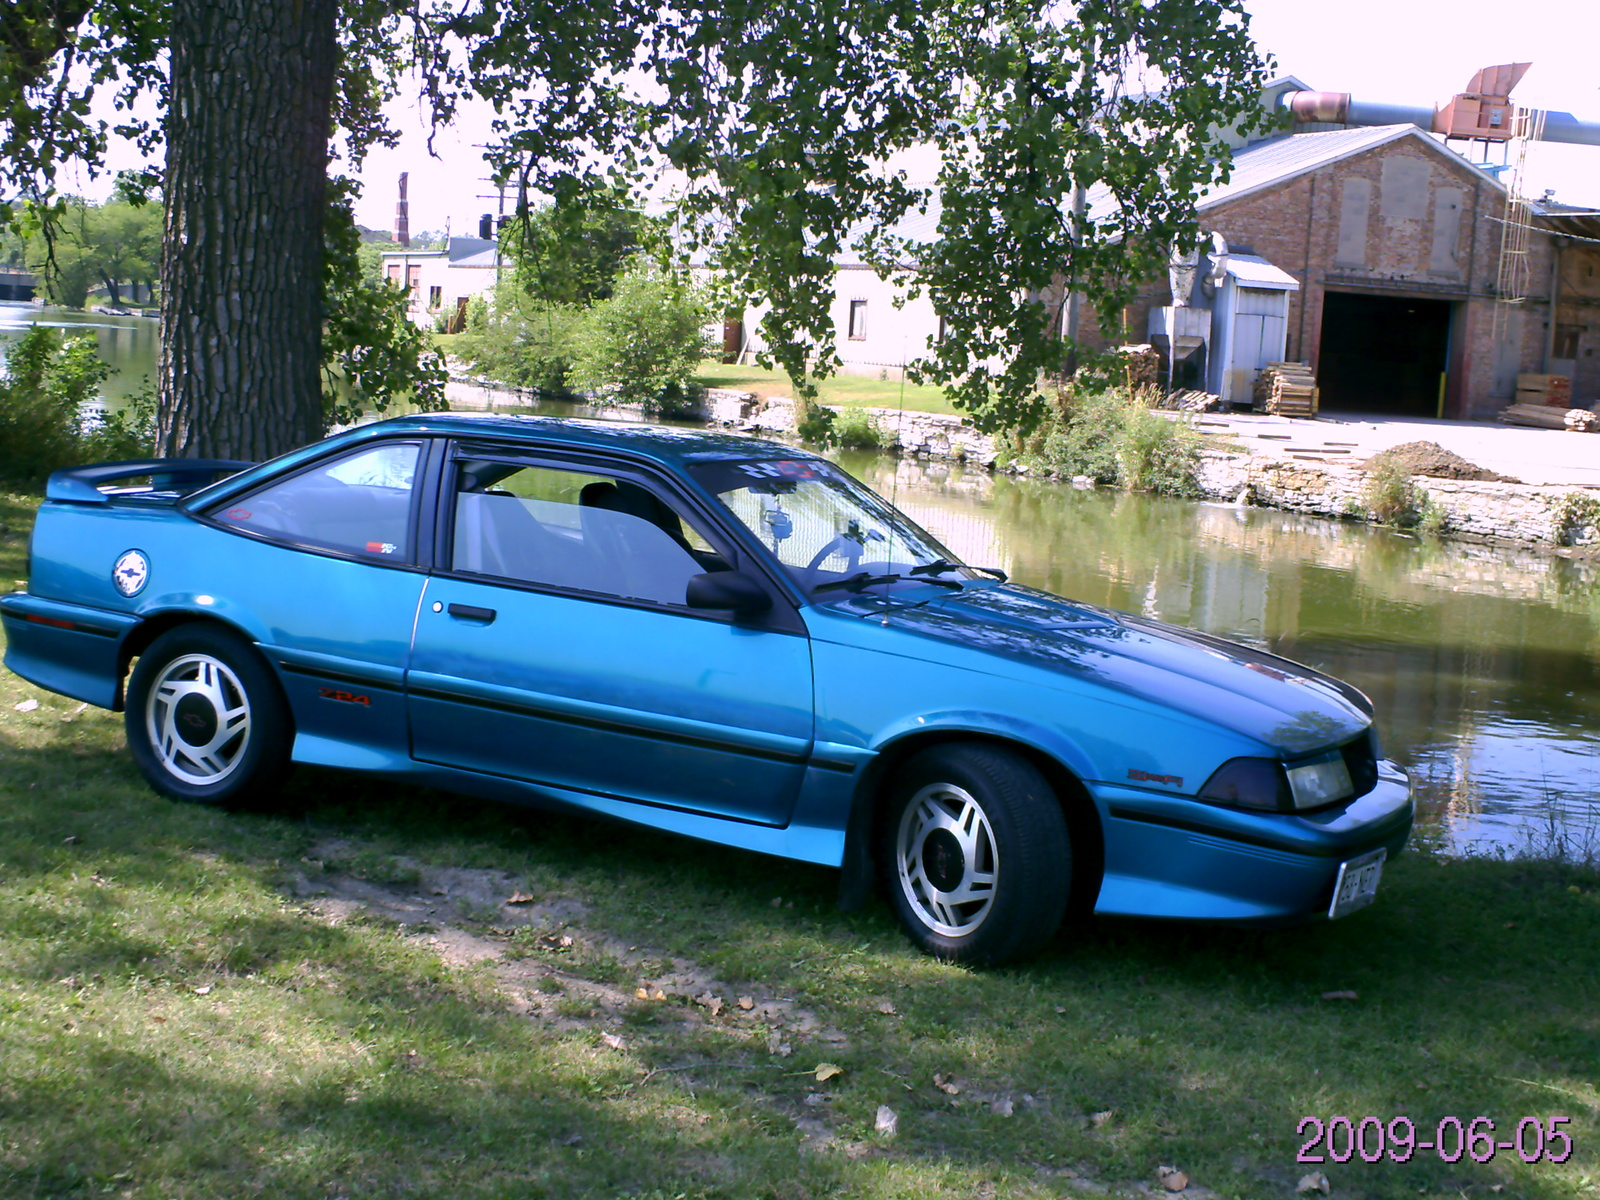 Chevroletcavalierz L Be C D C C in addition Chevrolet Cavalier Dr Z Coupe Pic likewise Maxresdefault further Maxresdefault in addition Px St Chevrolet Cavalier Sedan. on 1986 cavalier z24